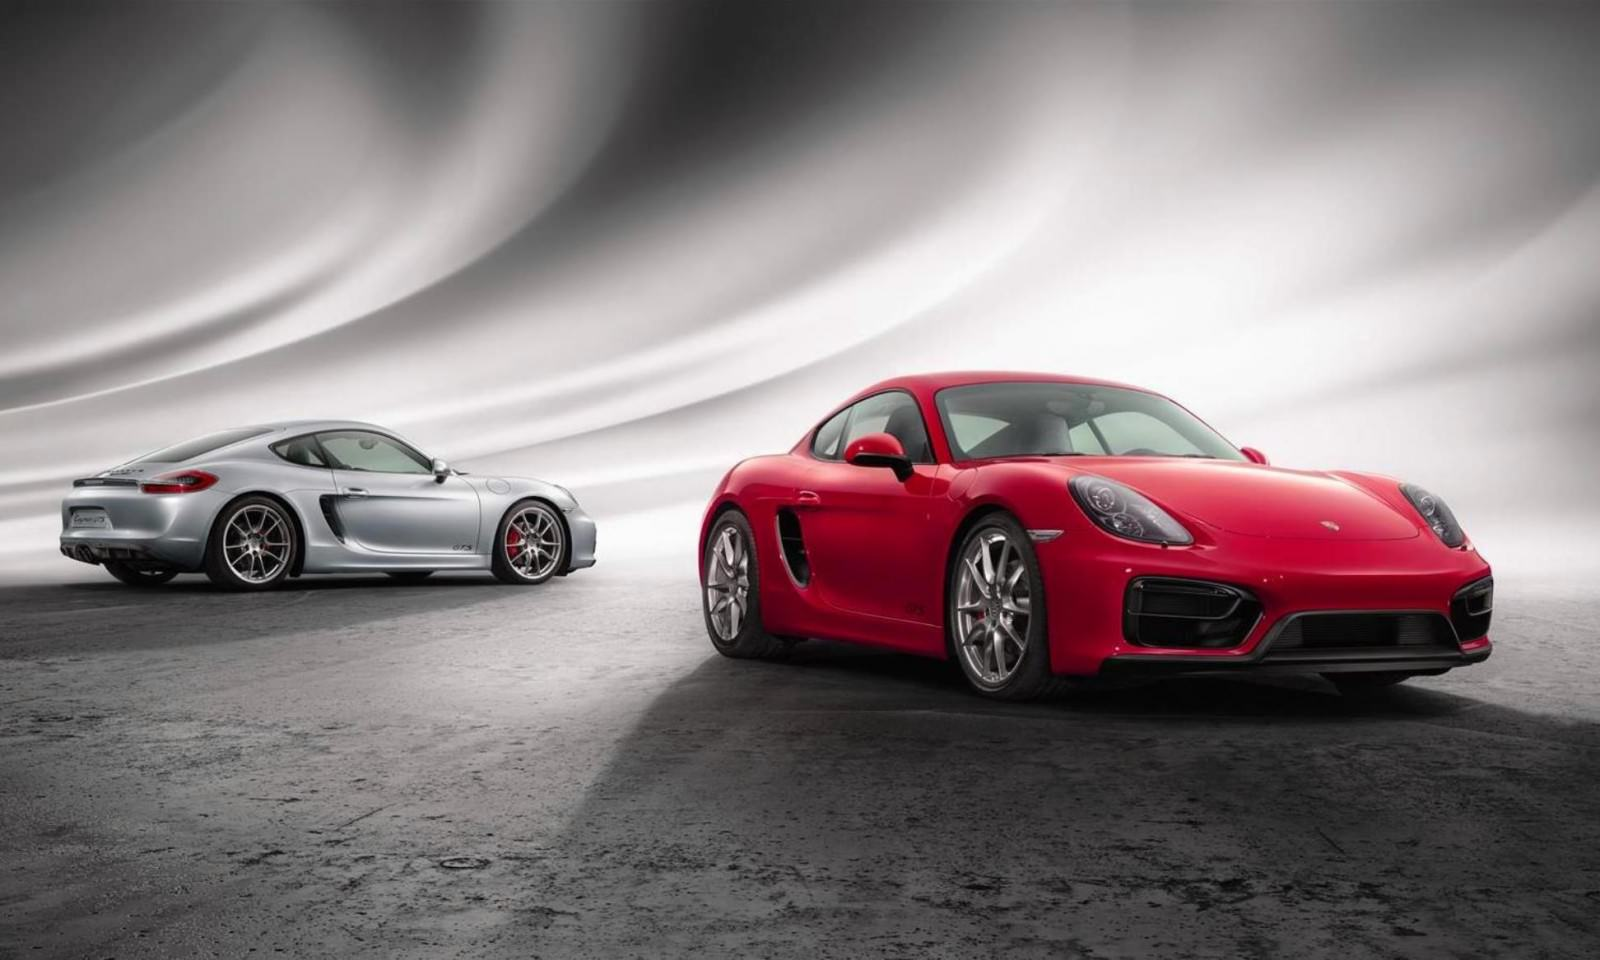 2015 Porsche Boxster and Cayman GTS 62